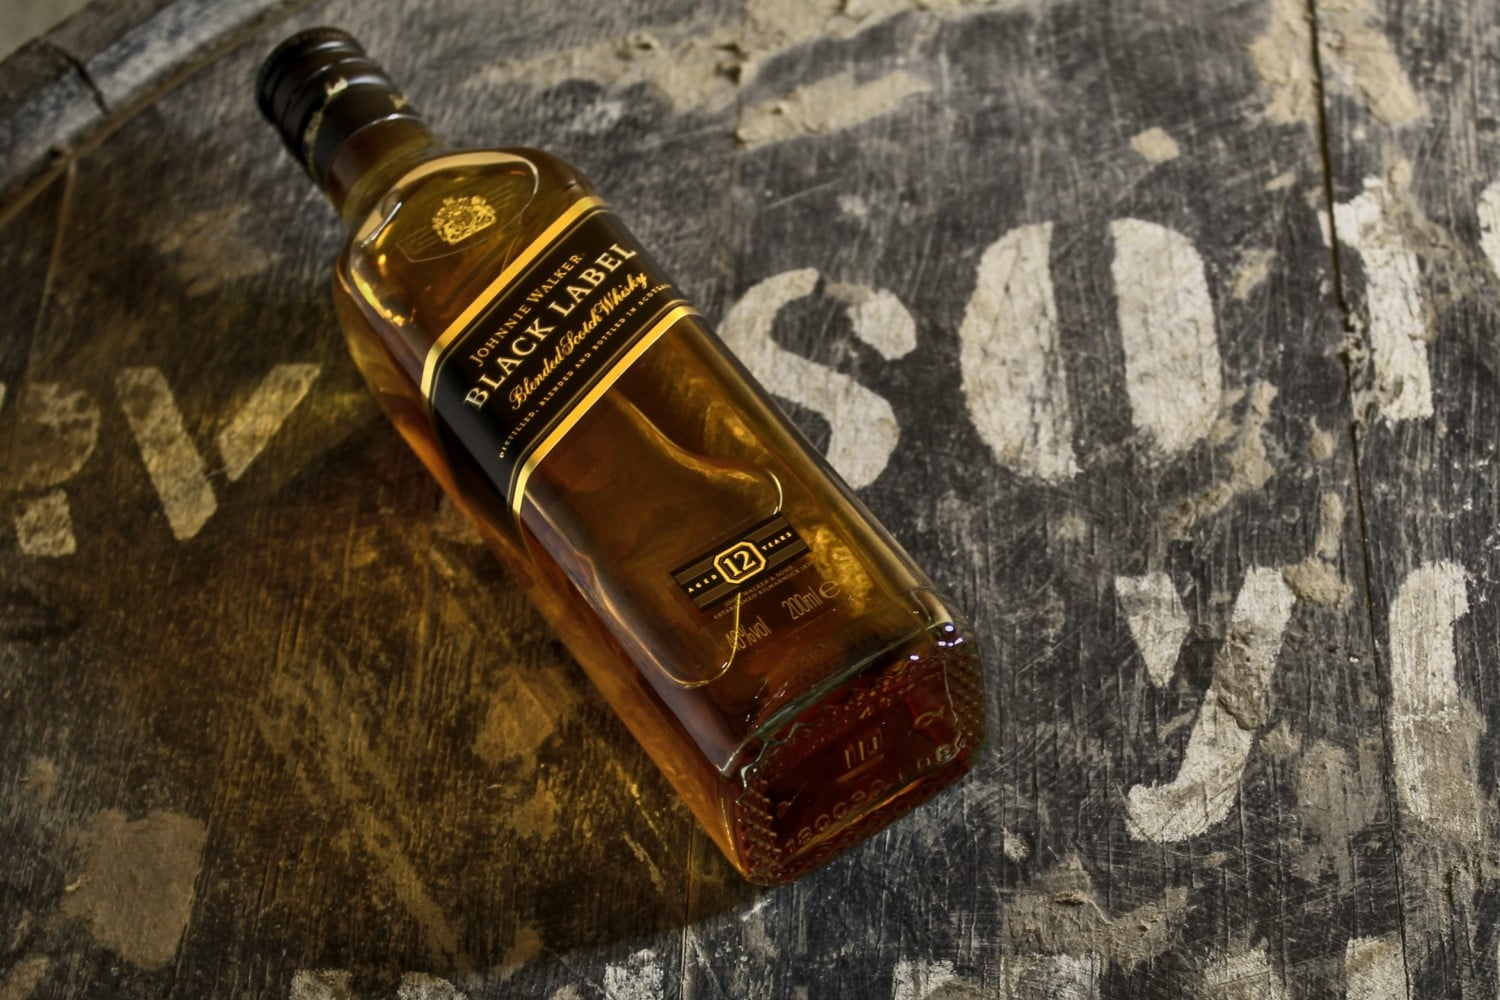 The Johnnie Walker Black Label is one of the best scotch whisky for beginners